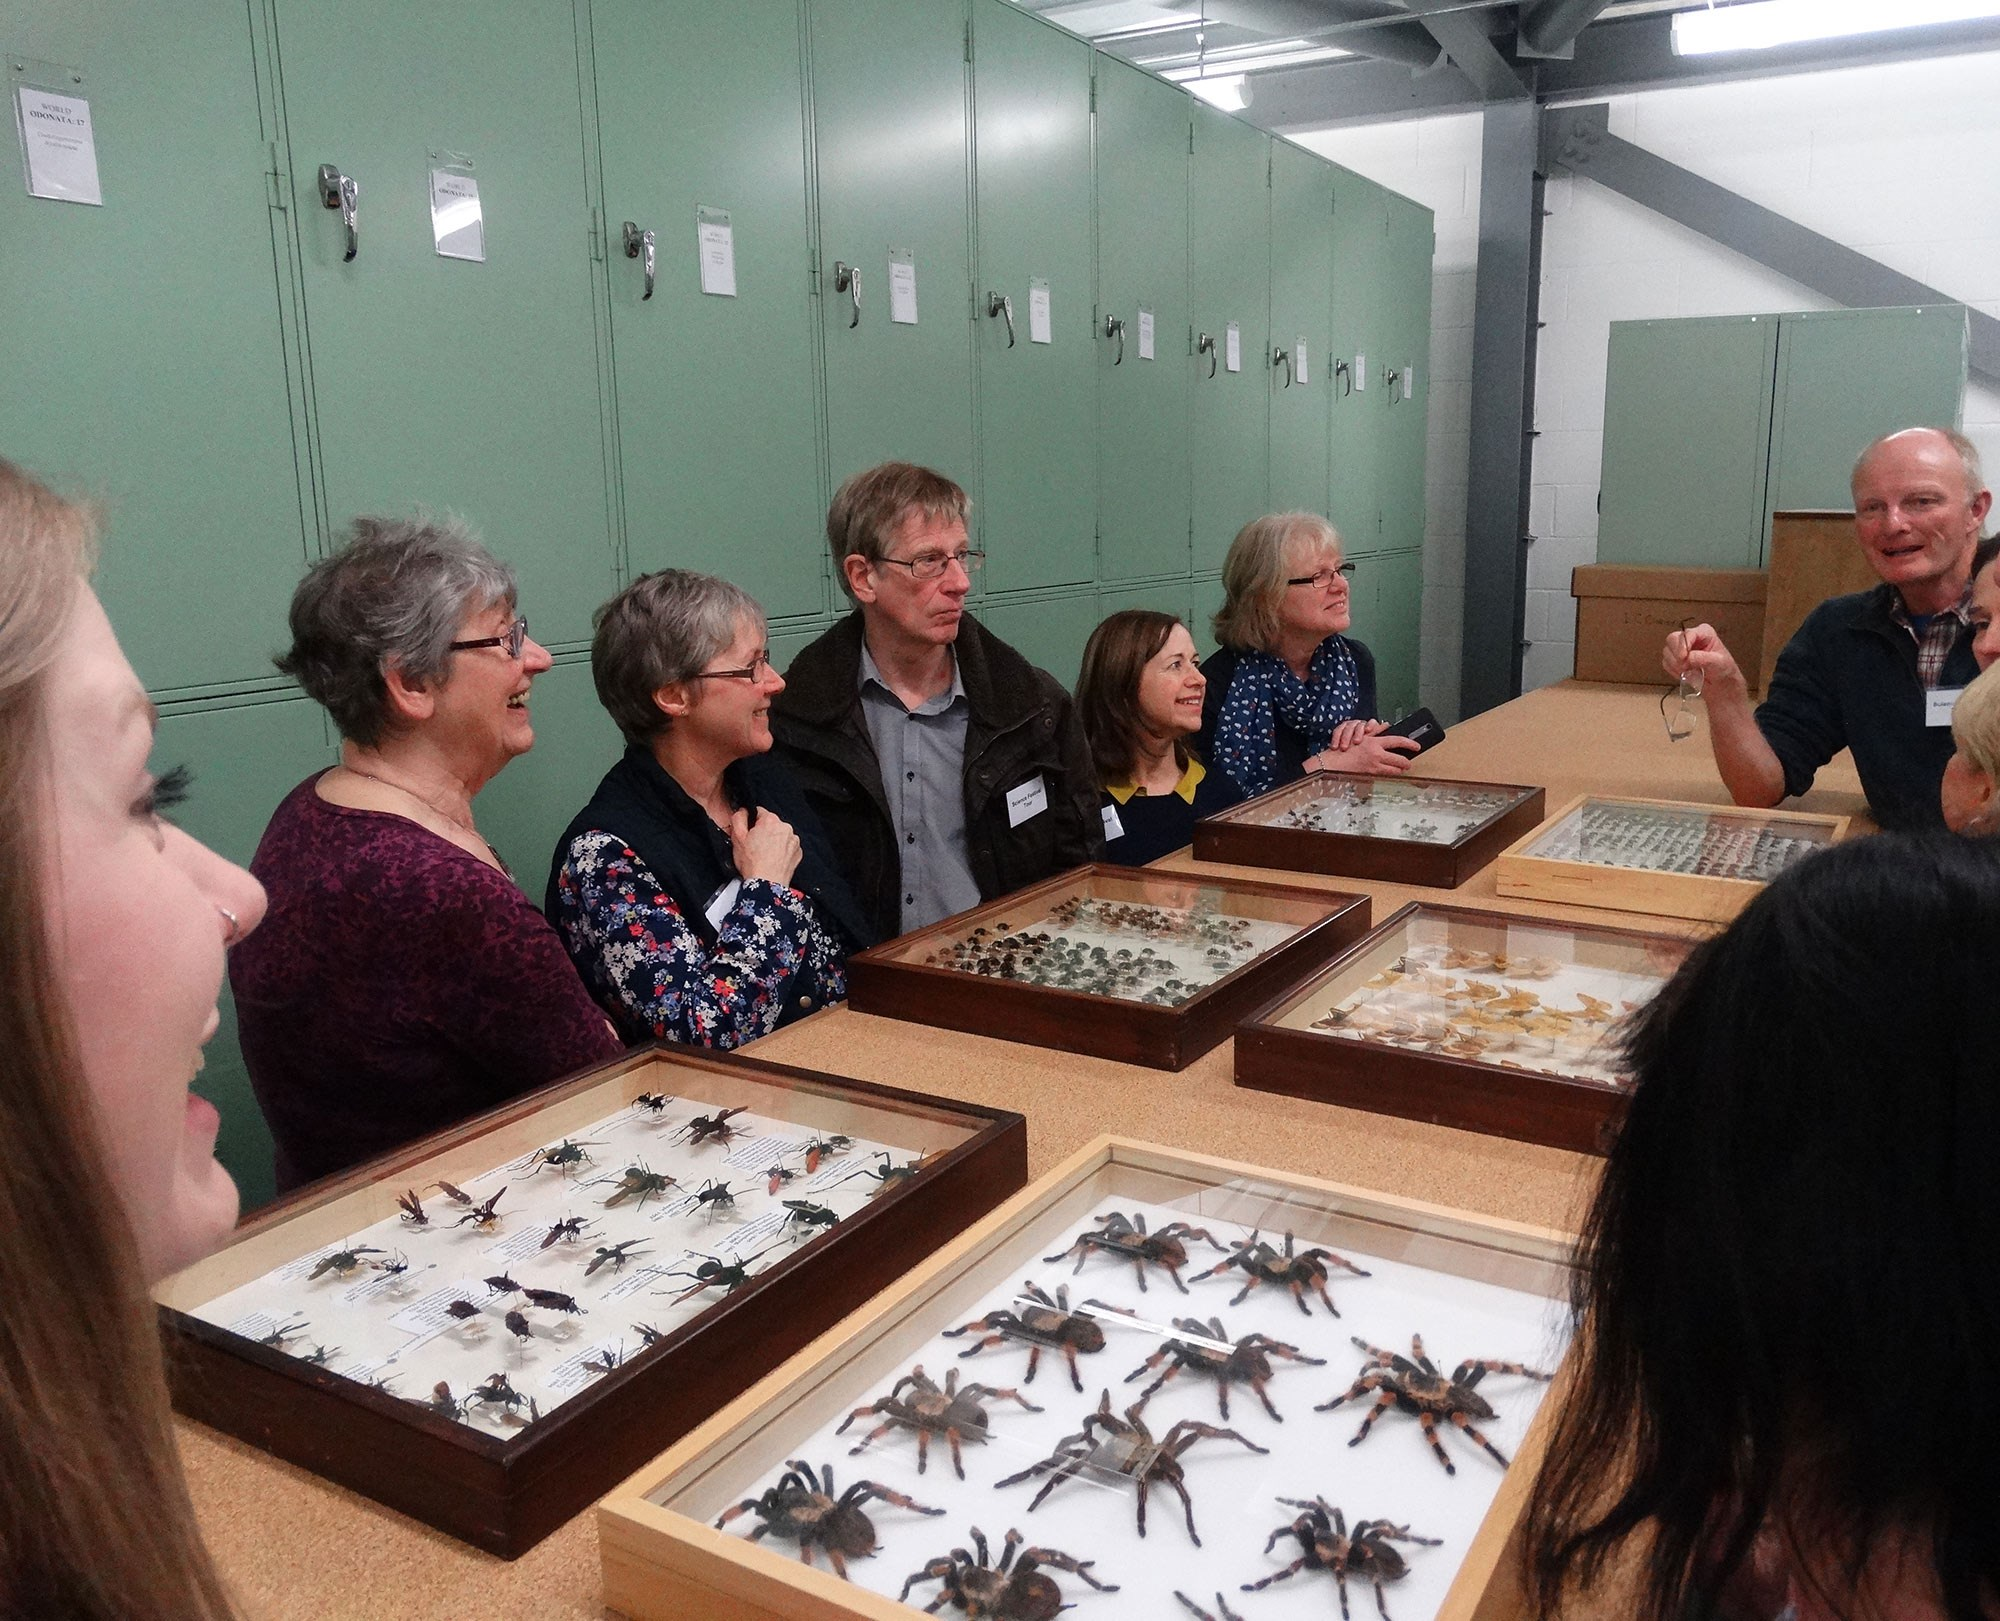 Tour of the entomology collection